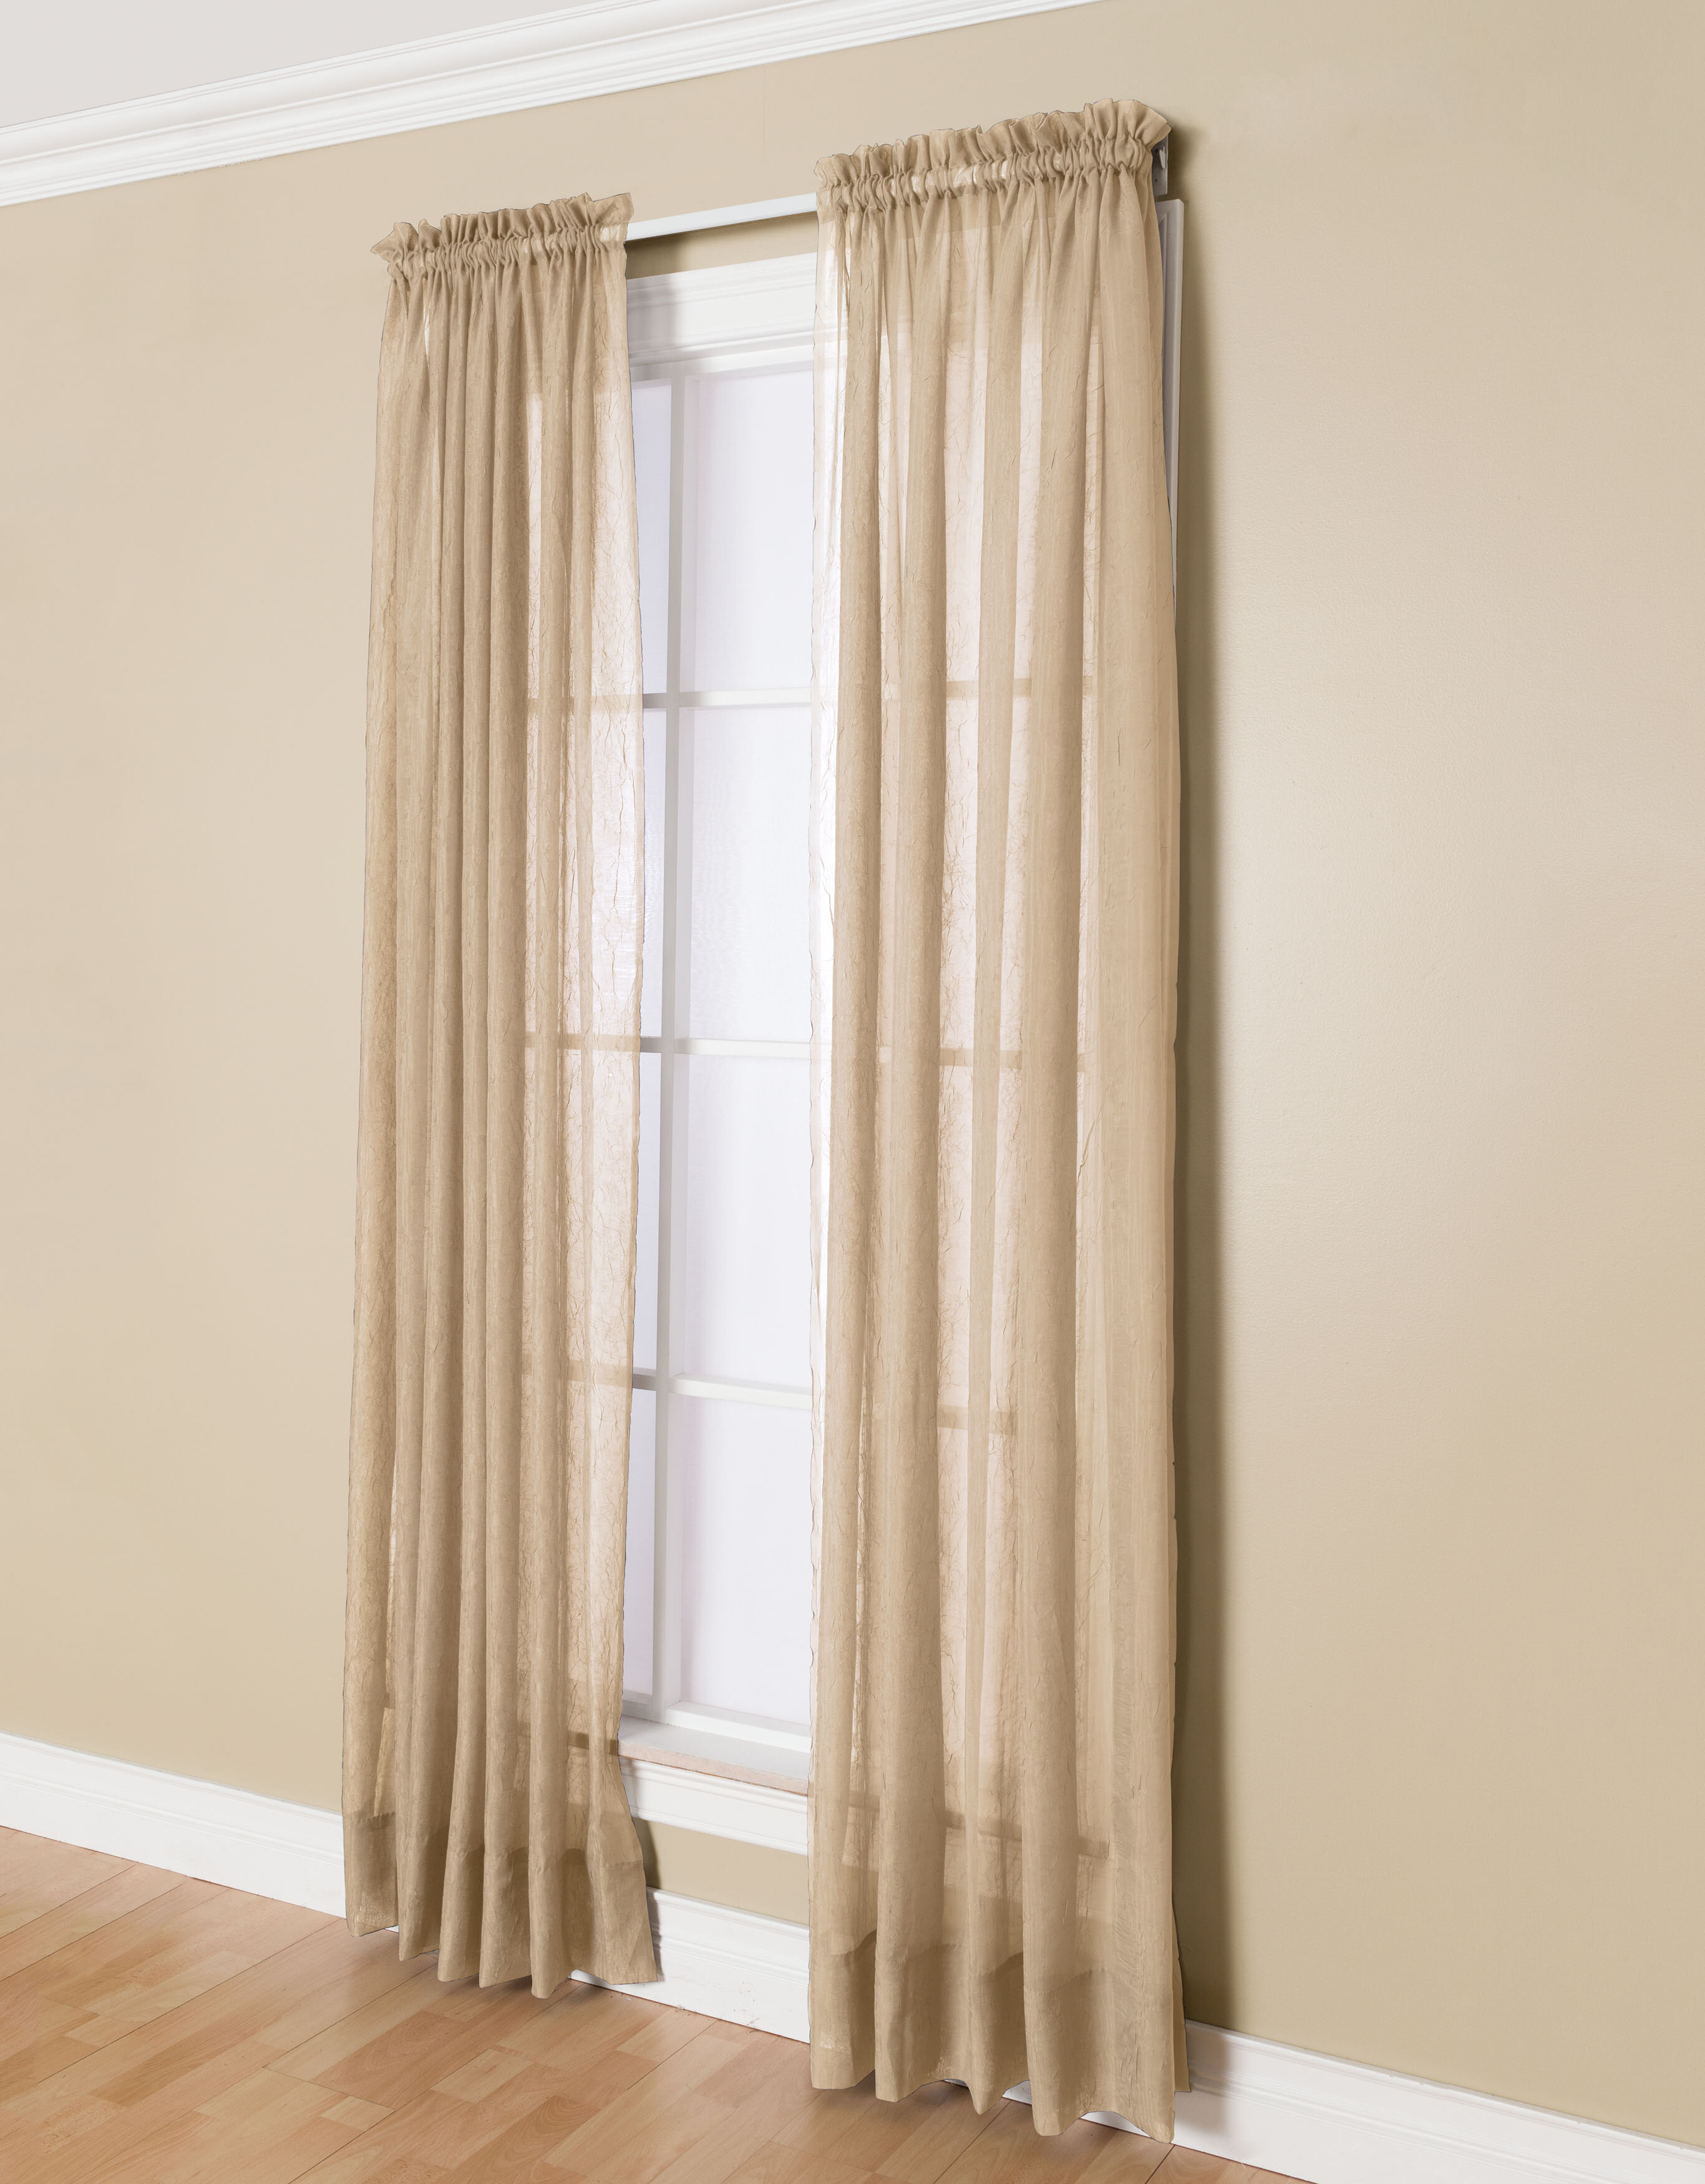 Solunar Solid Sheer Rod Pocket Single Curtain Panel Pertaining To Light Filtering Sheer Single Curtain Panels (View 10 of 20)